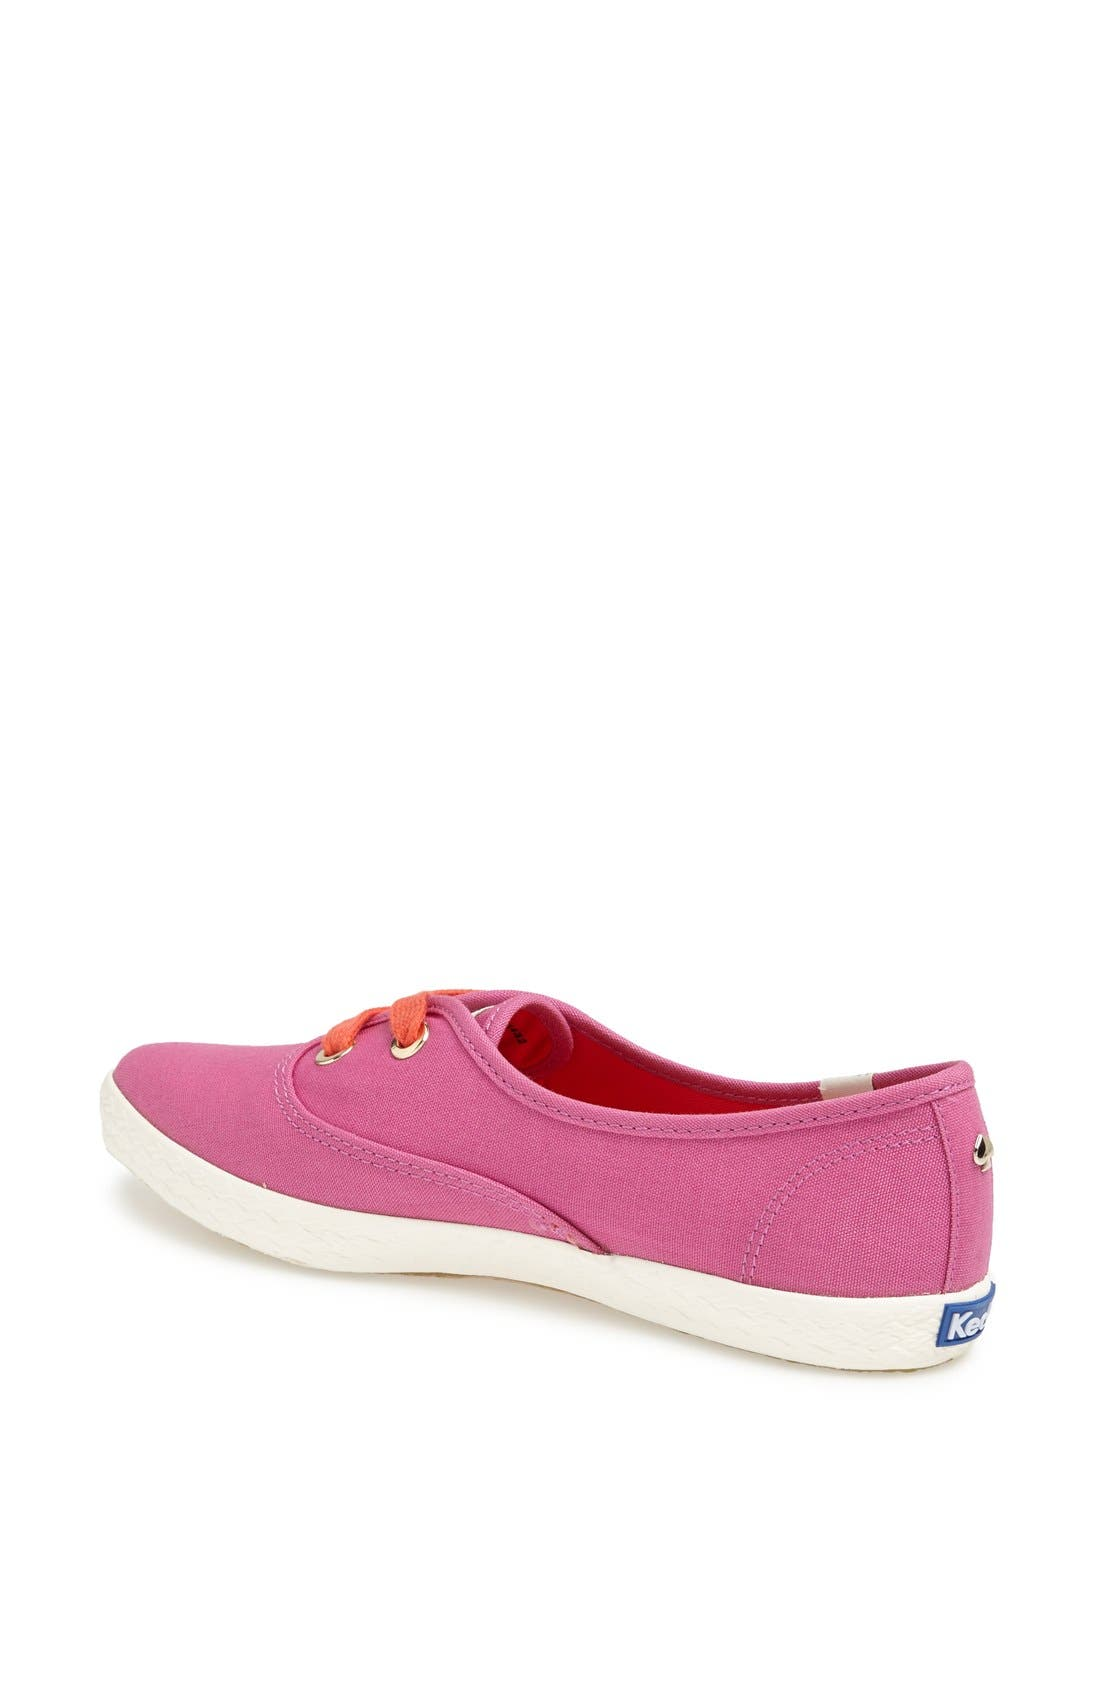 KEDS<SUP>®</SUP> FOR KATE SPADE NEW YORK,                             'pointer' sneaker,                             Alternate thumbnail 2, color,                             669